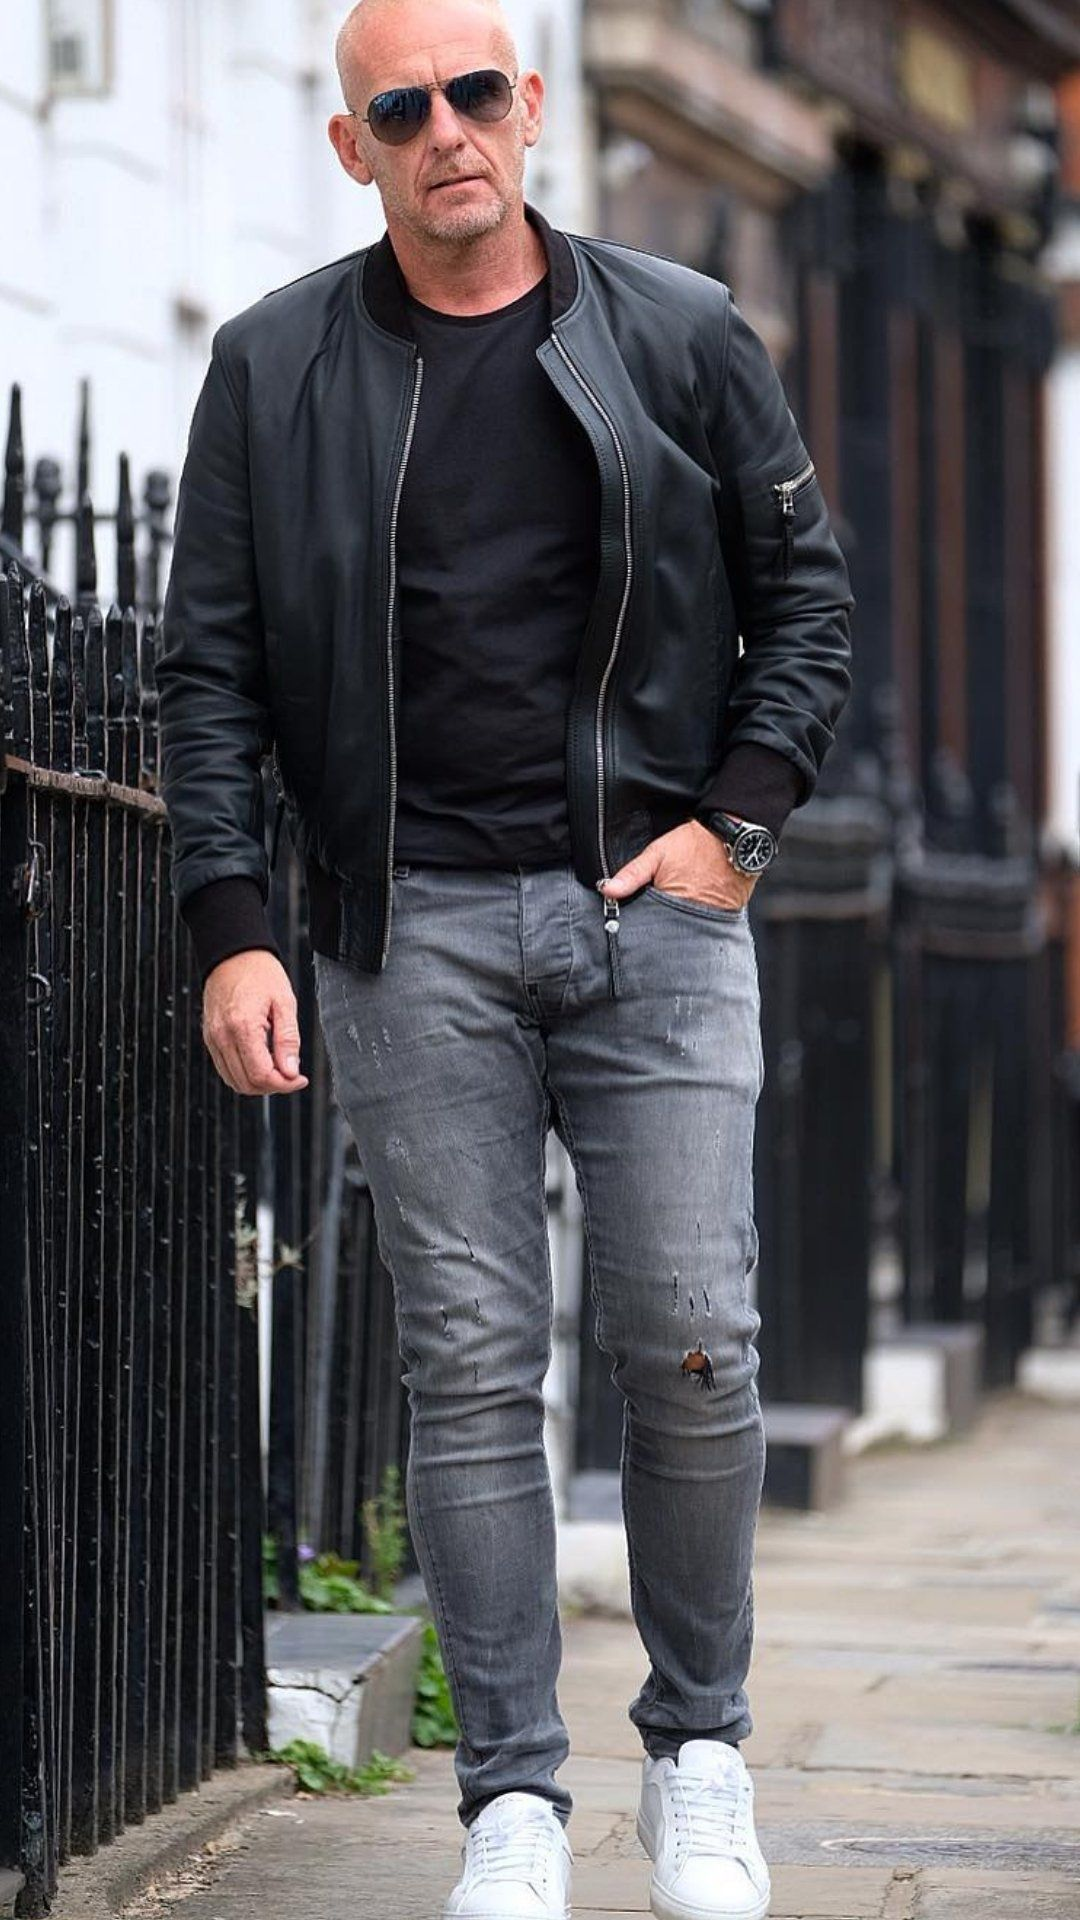 Top 5 Street Style Looks For Bald Men In 2019 Men S Fashion Mens